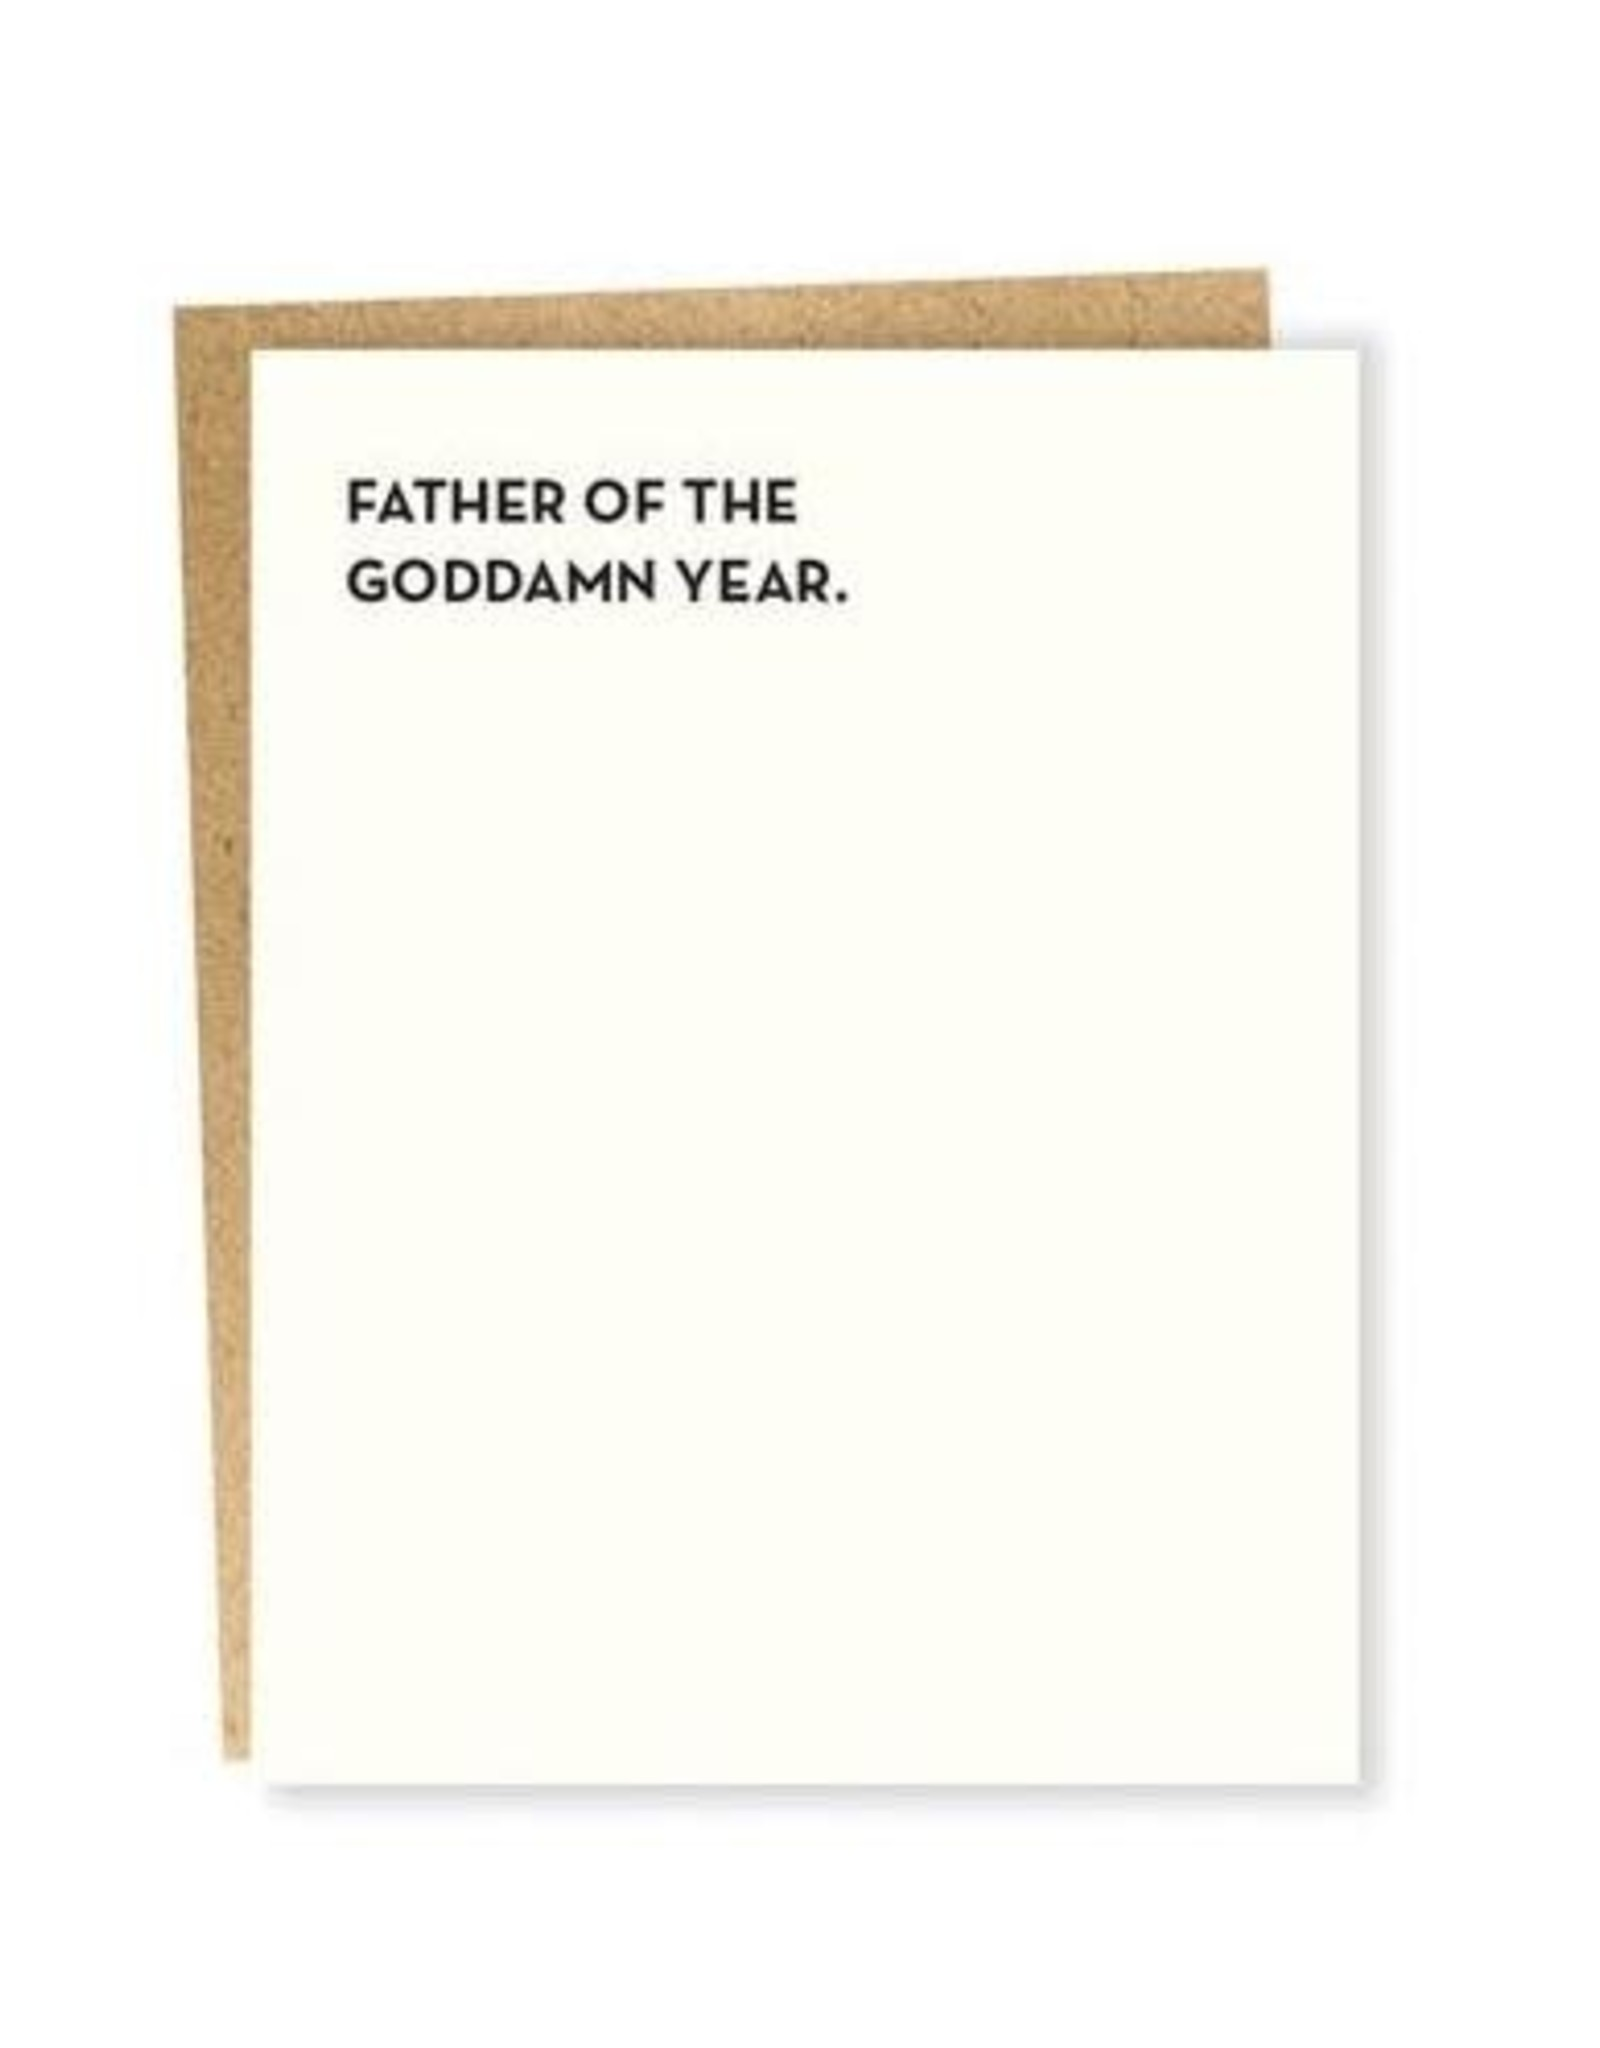 Father of the Goddamn Year Happy Father's Day Greeting Card - Sapling Press